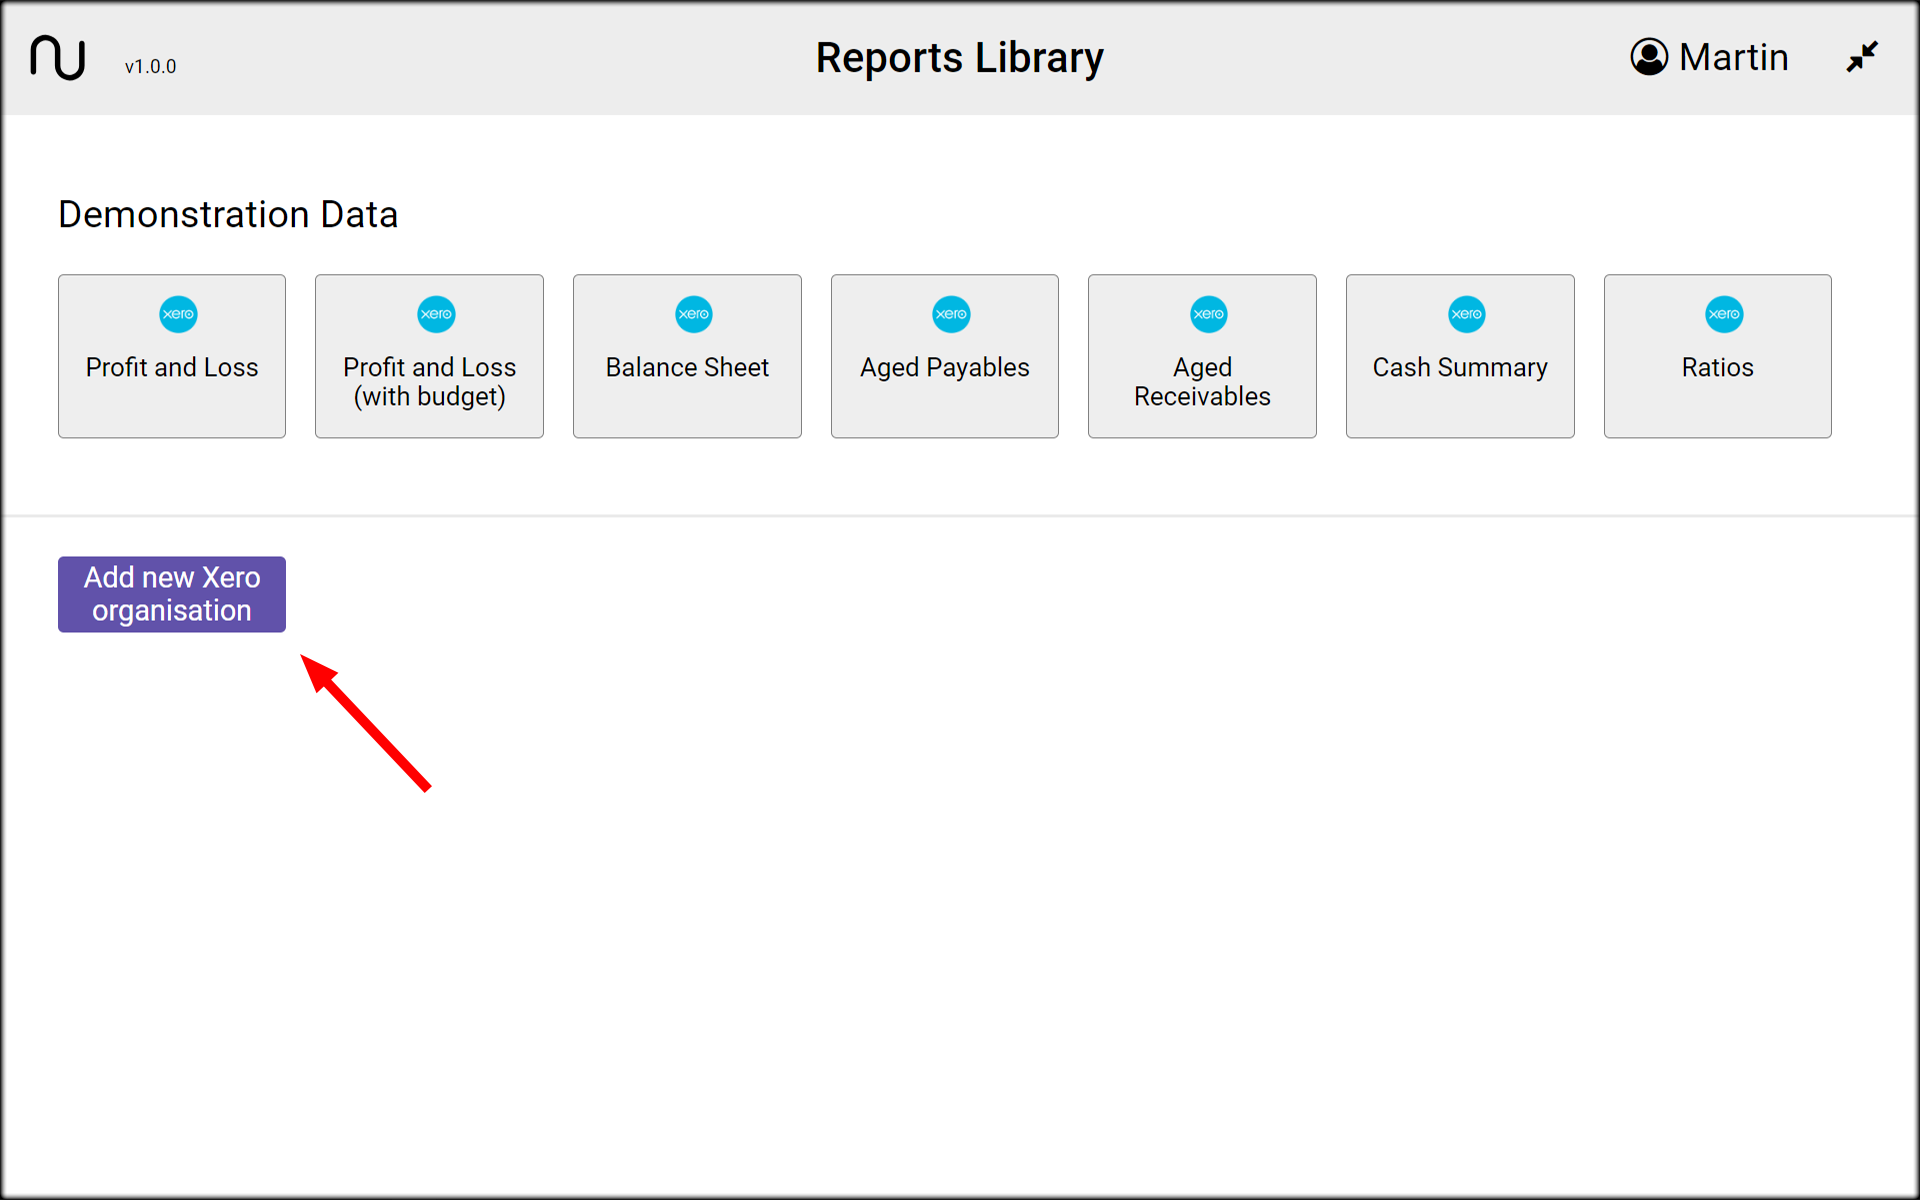 reports library